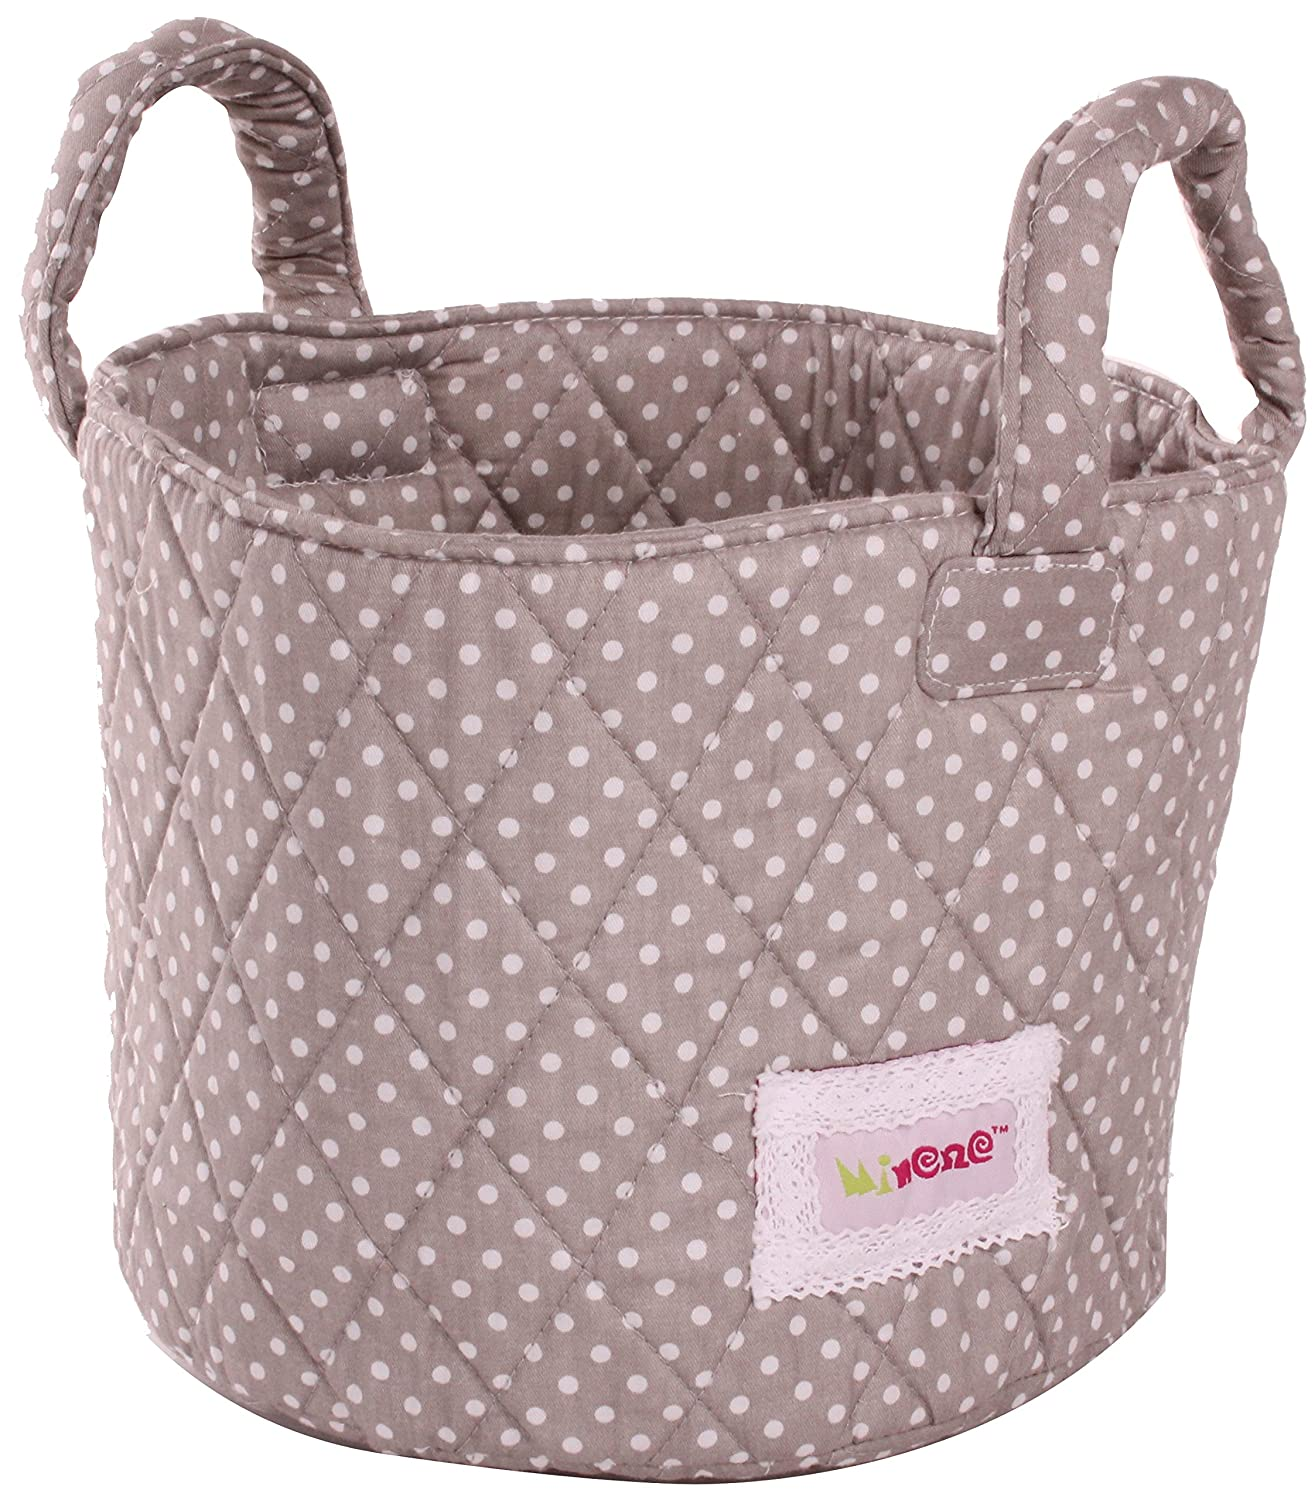 Minene Small Grey with White Dots Fabric Storage Basket Organiser with Handles 18x22cm Minene UK Ltd 1527